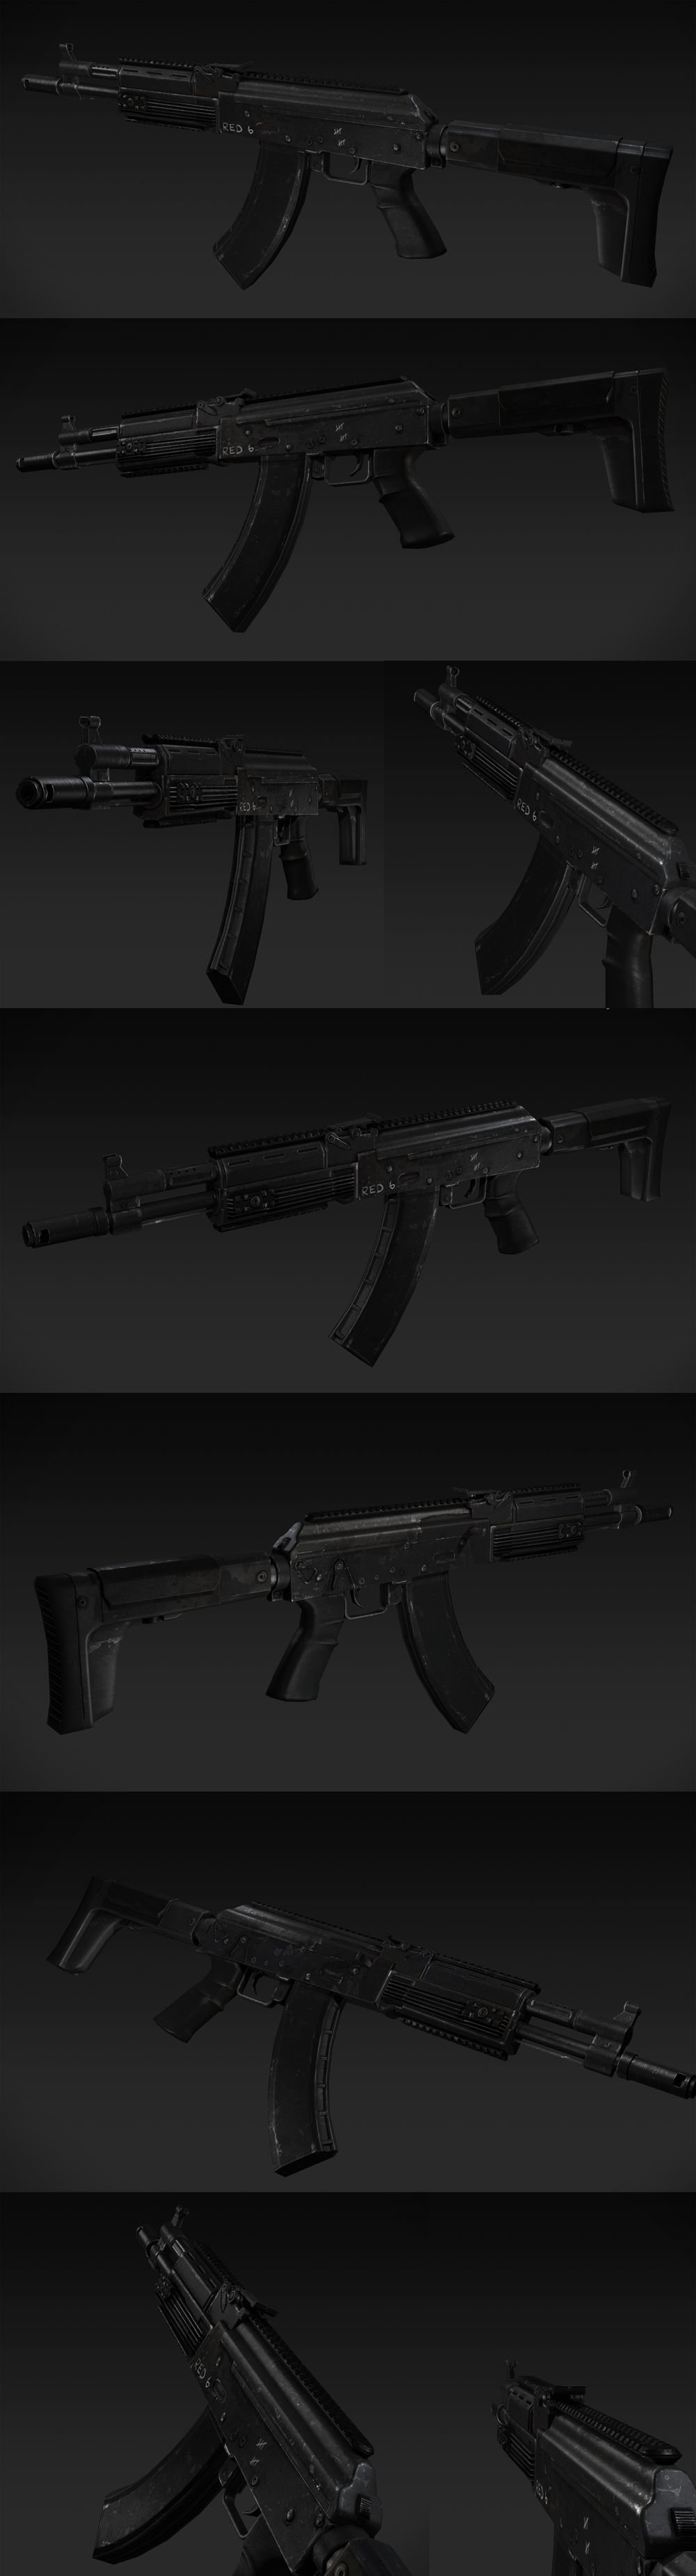 ak200_textured.png